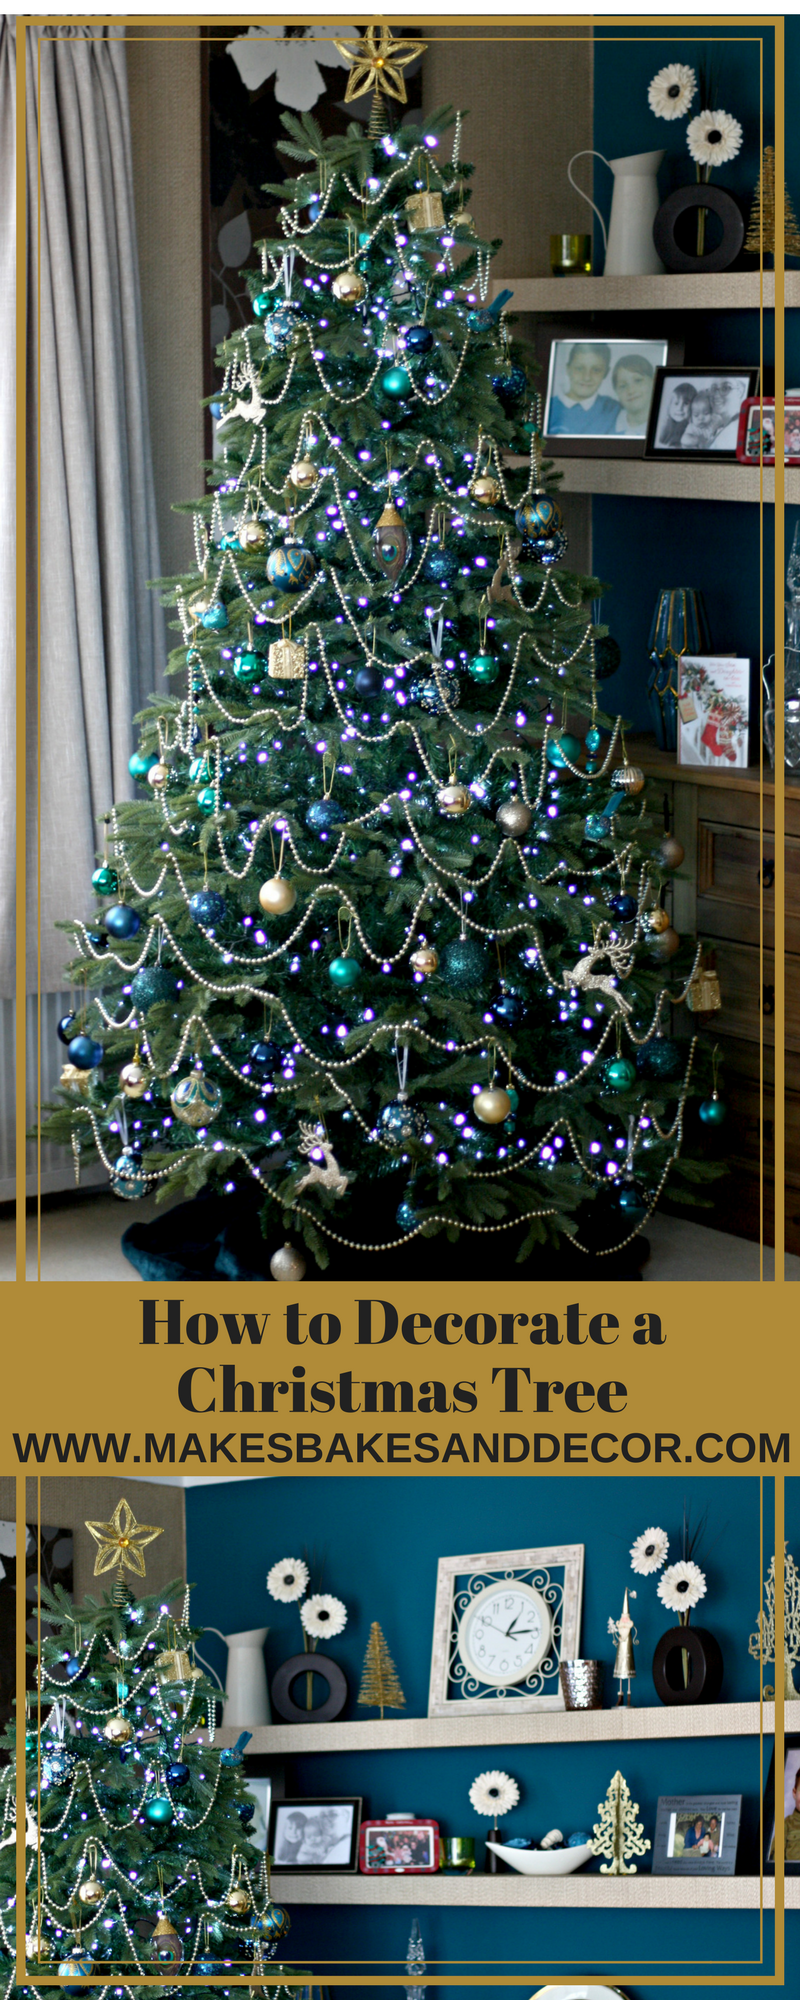 how to decorate a christmas tree here is my step by step guide on how i decorate my christmas tree christmas christmastree christmasdecor - Steps To Decorating A Christmas Tree